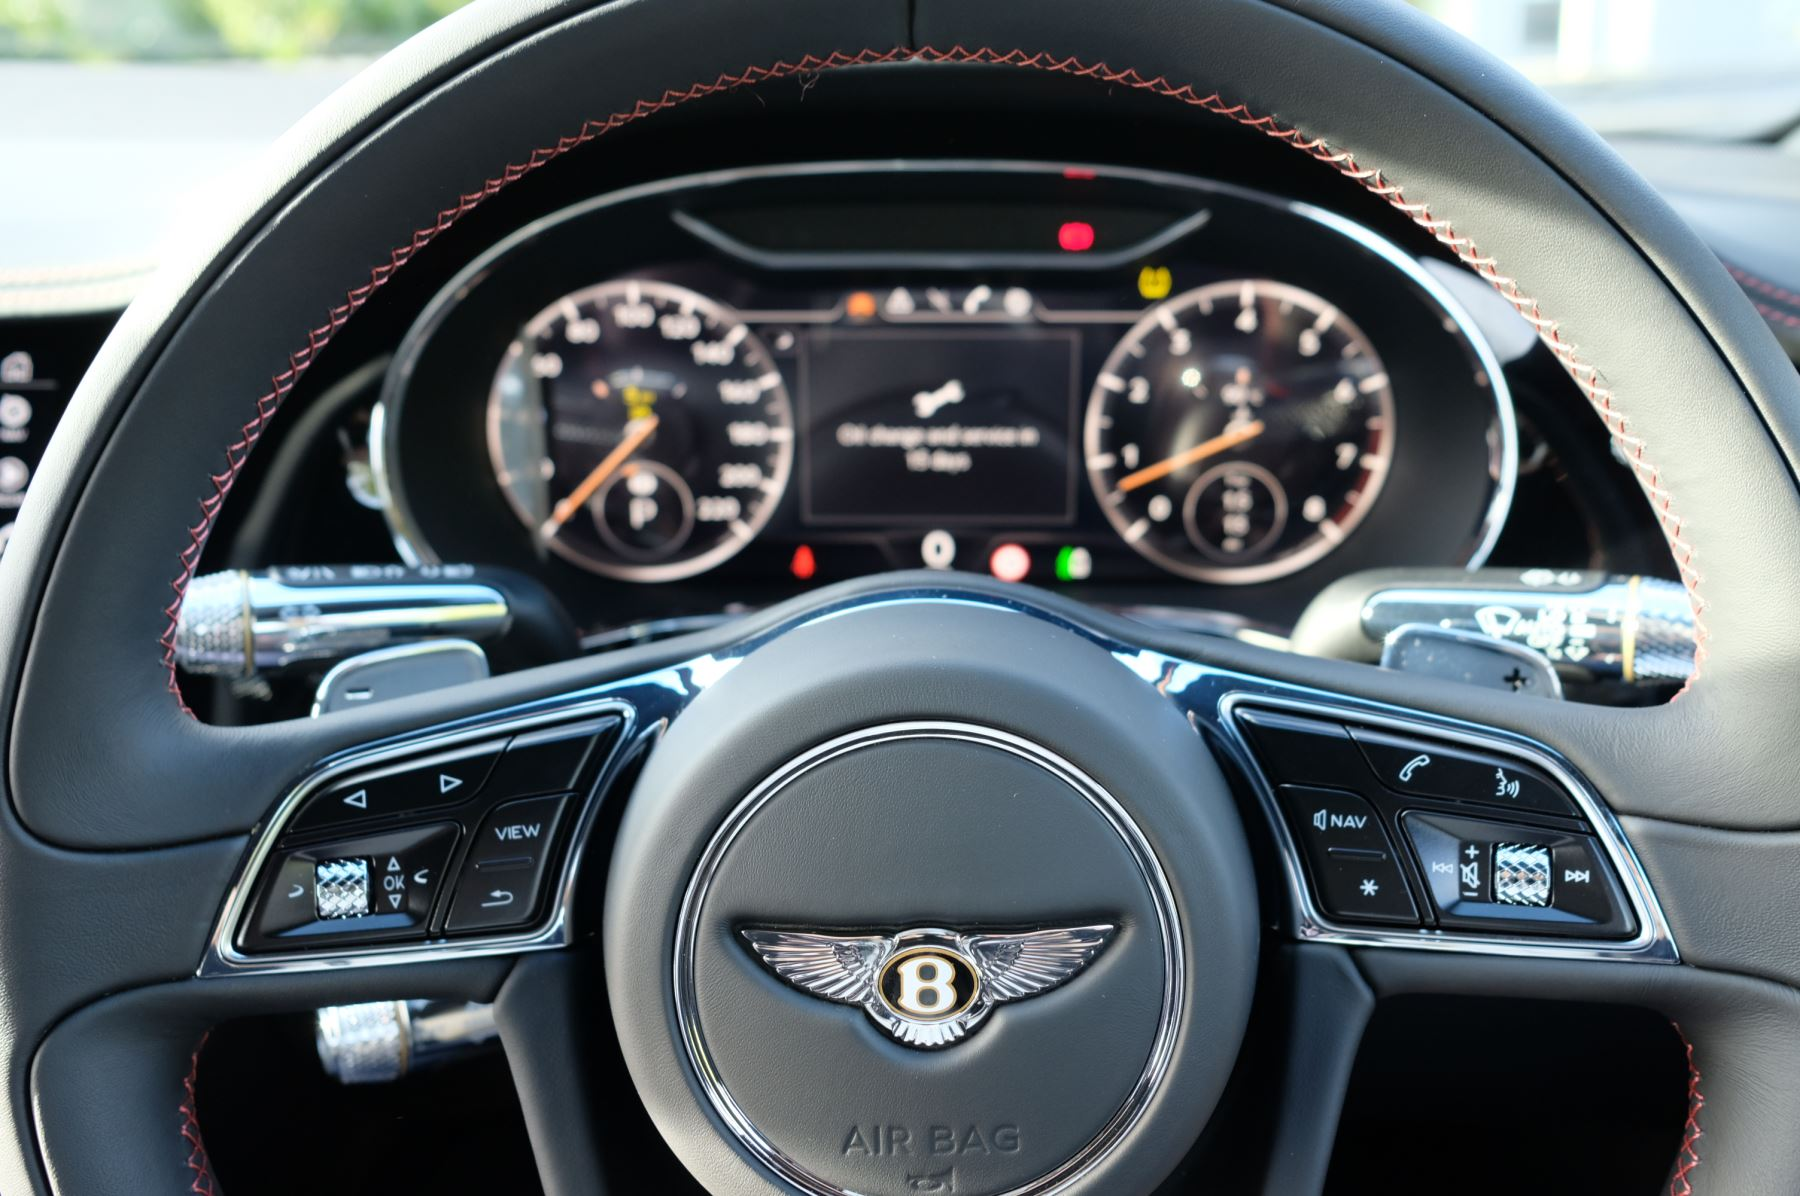 Bentley Continental GT 4.0 V8 2dr Auto [City+Touring Spec] image 16